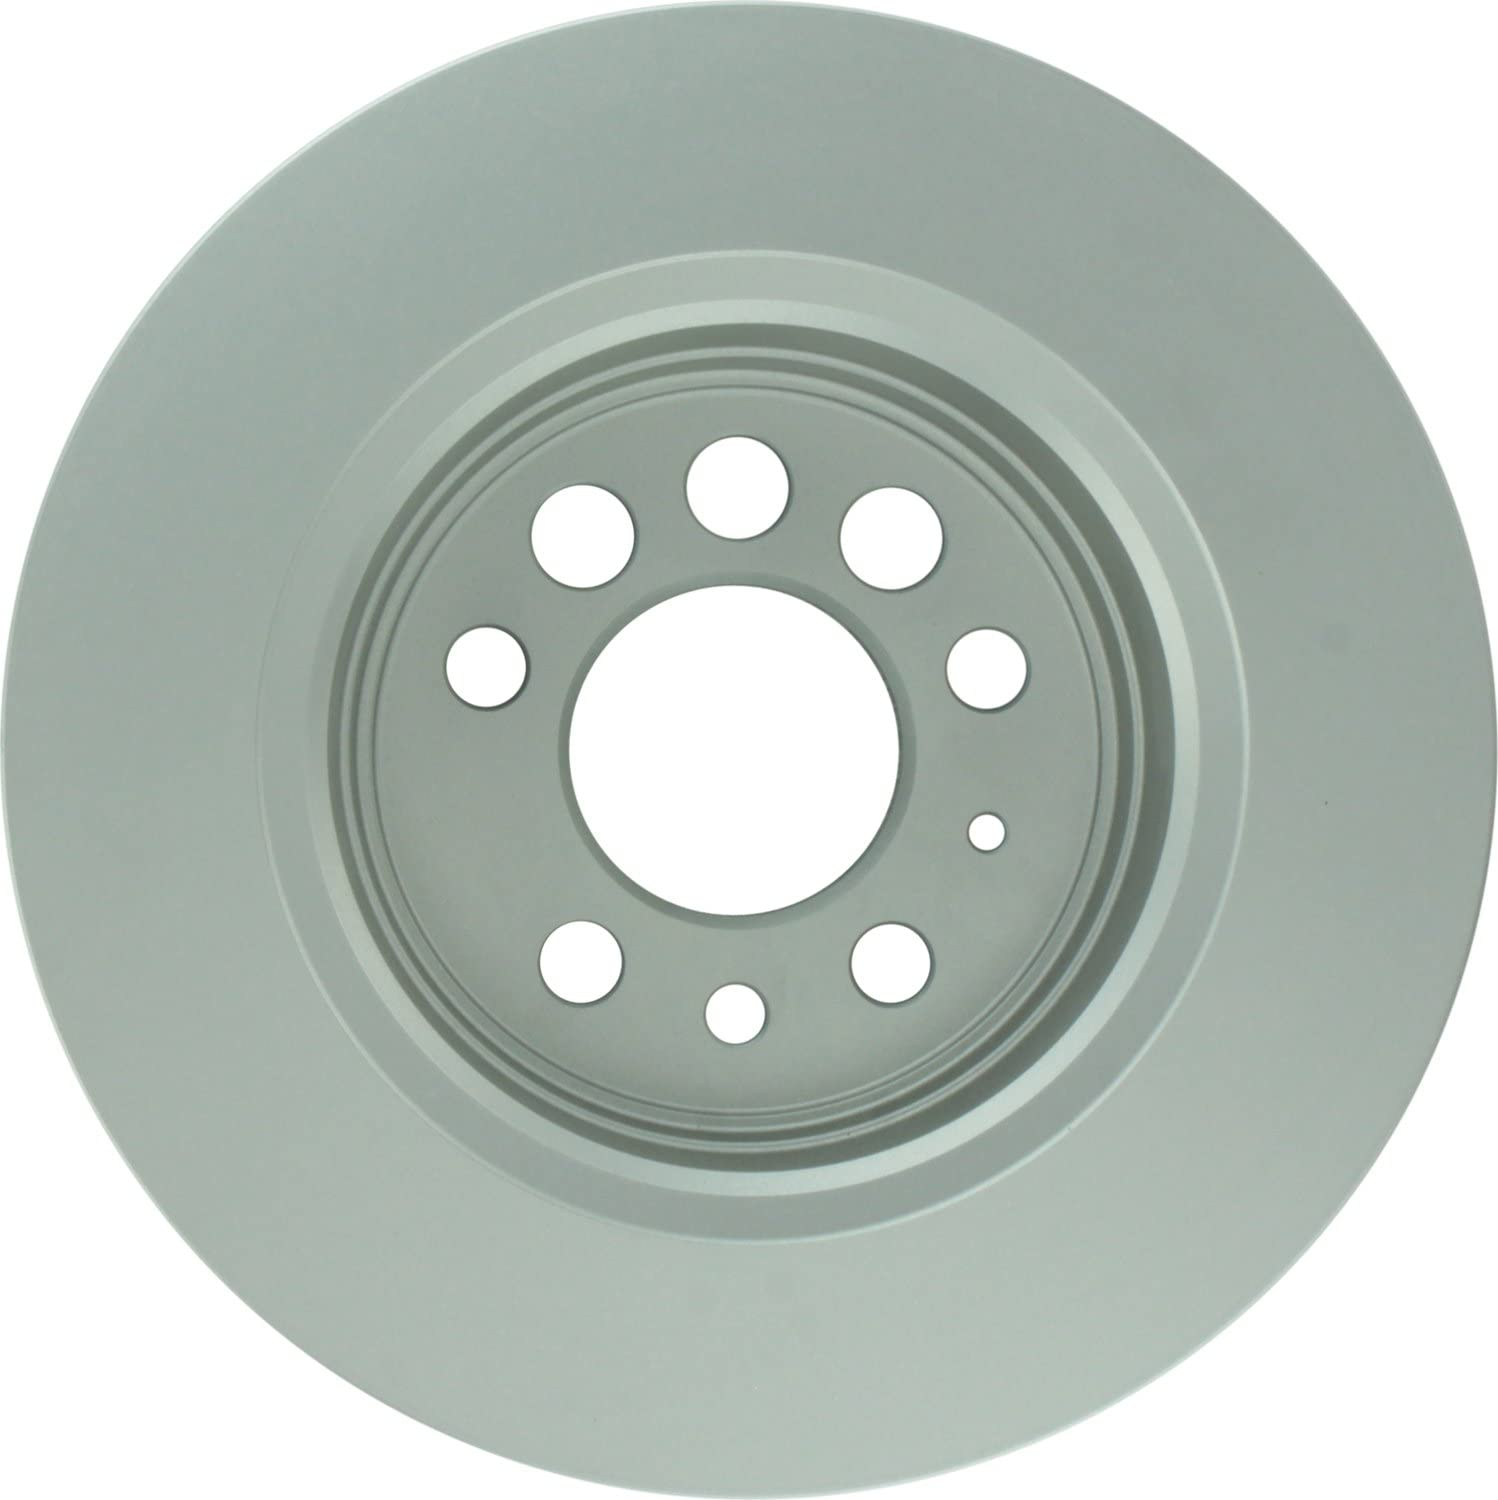 For Volvo 164 244 740 760 Rear Complete Disc Brake Rotors KIT /& Pads Quality